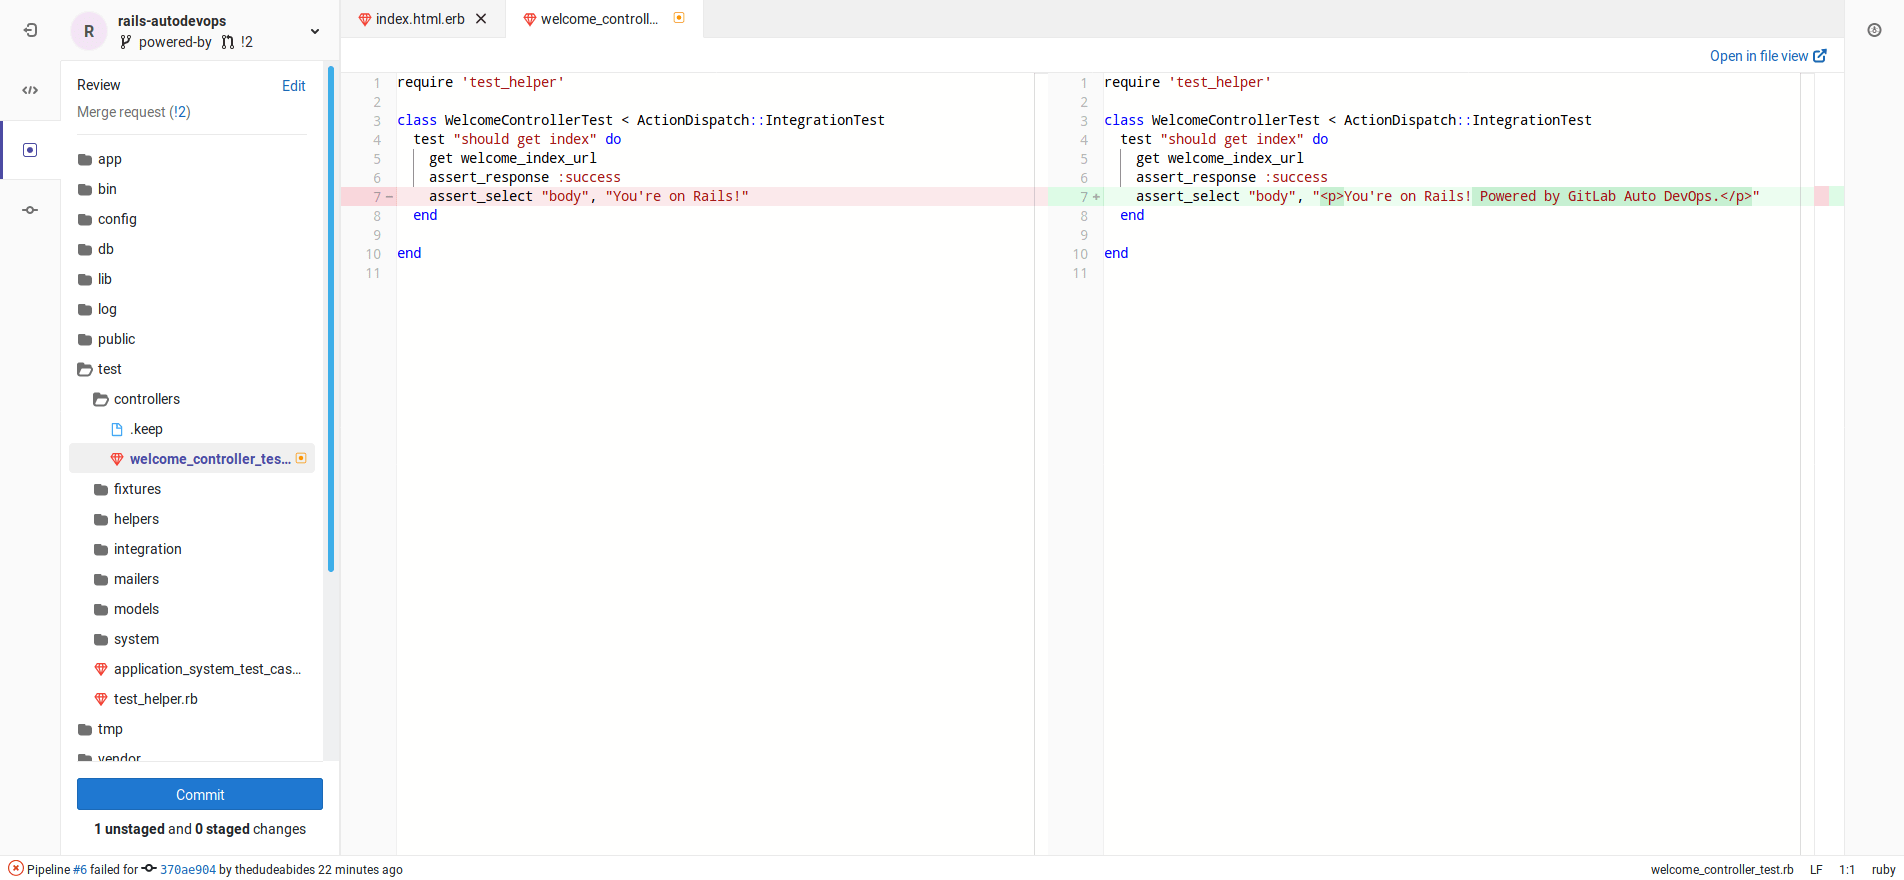 doc/topics/autodevops/img/guide_merge_request_ide.png